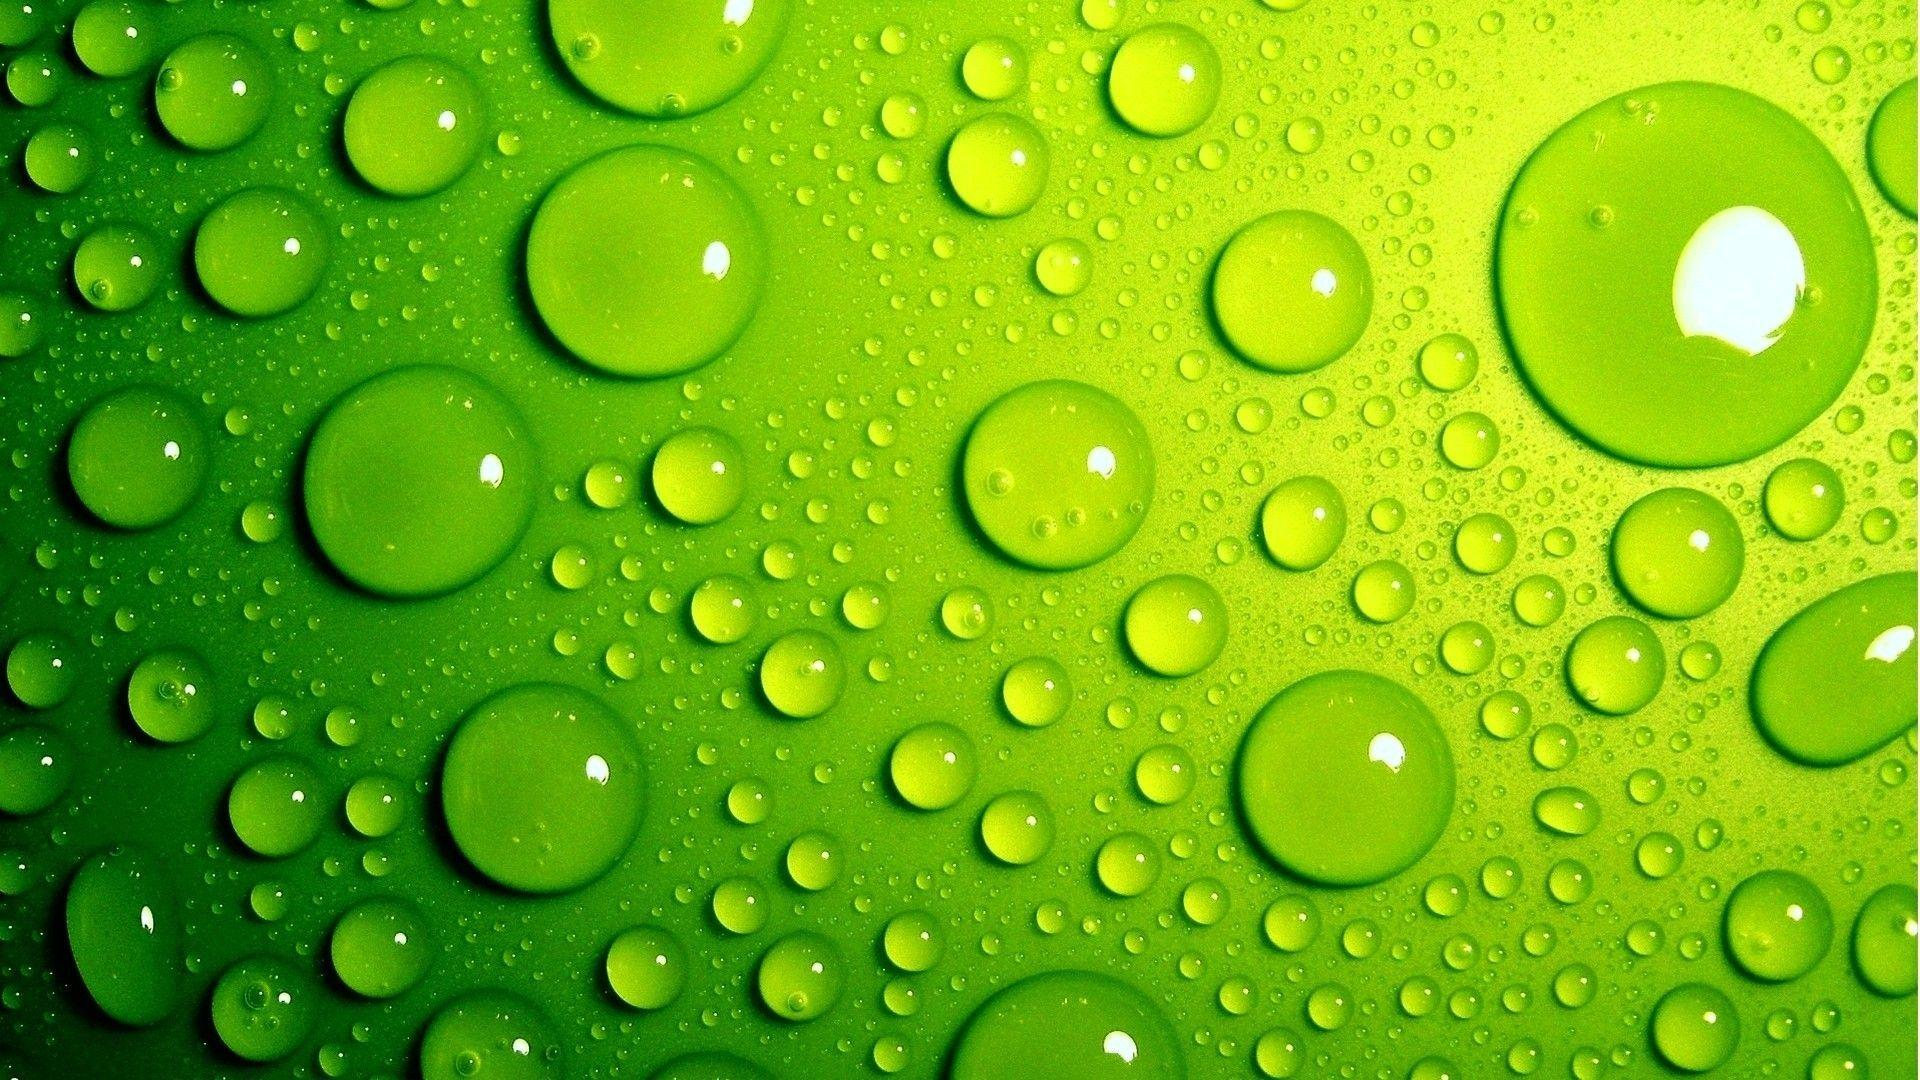 water drop hd wallpapers